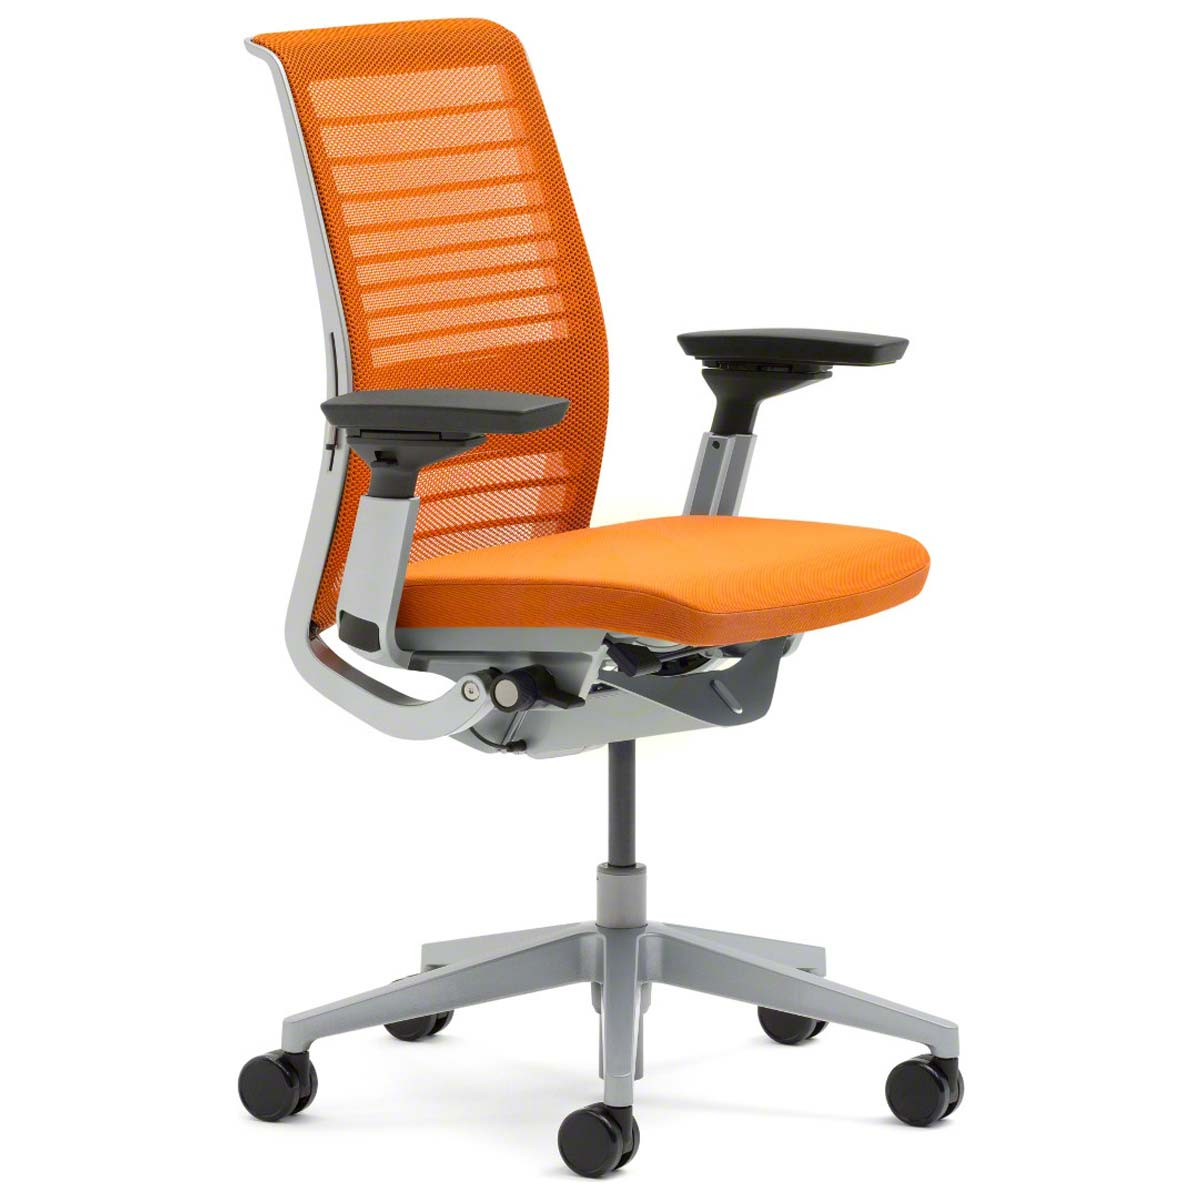 Steelcase Chair Shop Steelcase Think Chairs With 3d Knit Back